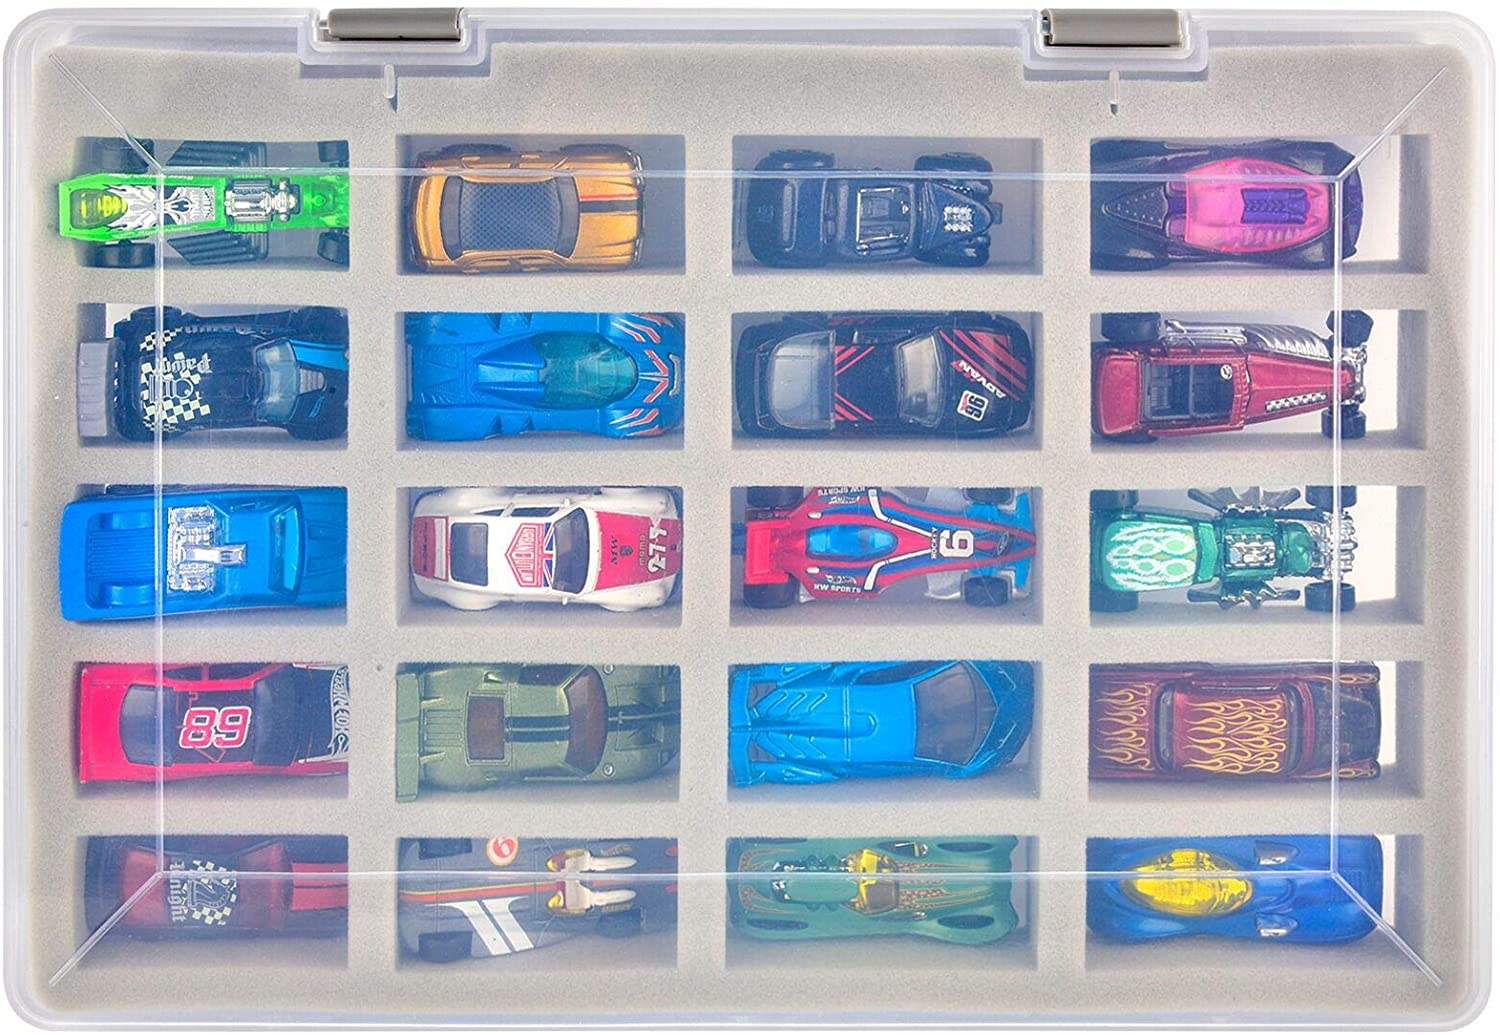 Box Only Toy Cars Organizer Storage Container Holds Up to 20 Hot Wheels Car Display Carrying Holder with 4 Size of Slots Adam Case Compatible with Hot Wheels Cars Gift Pack